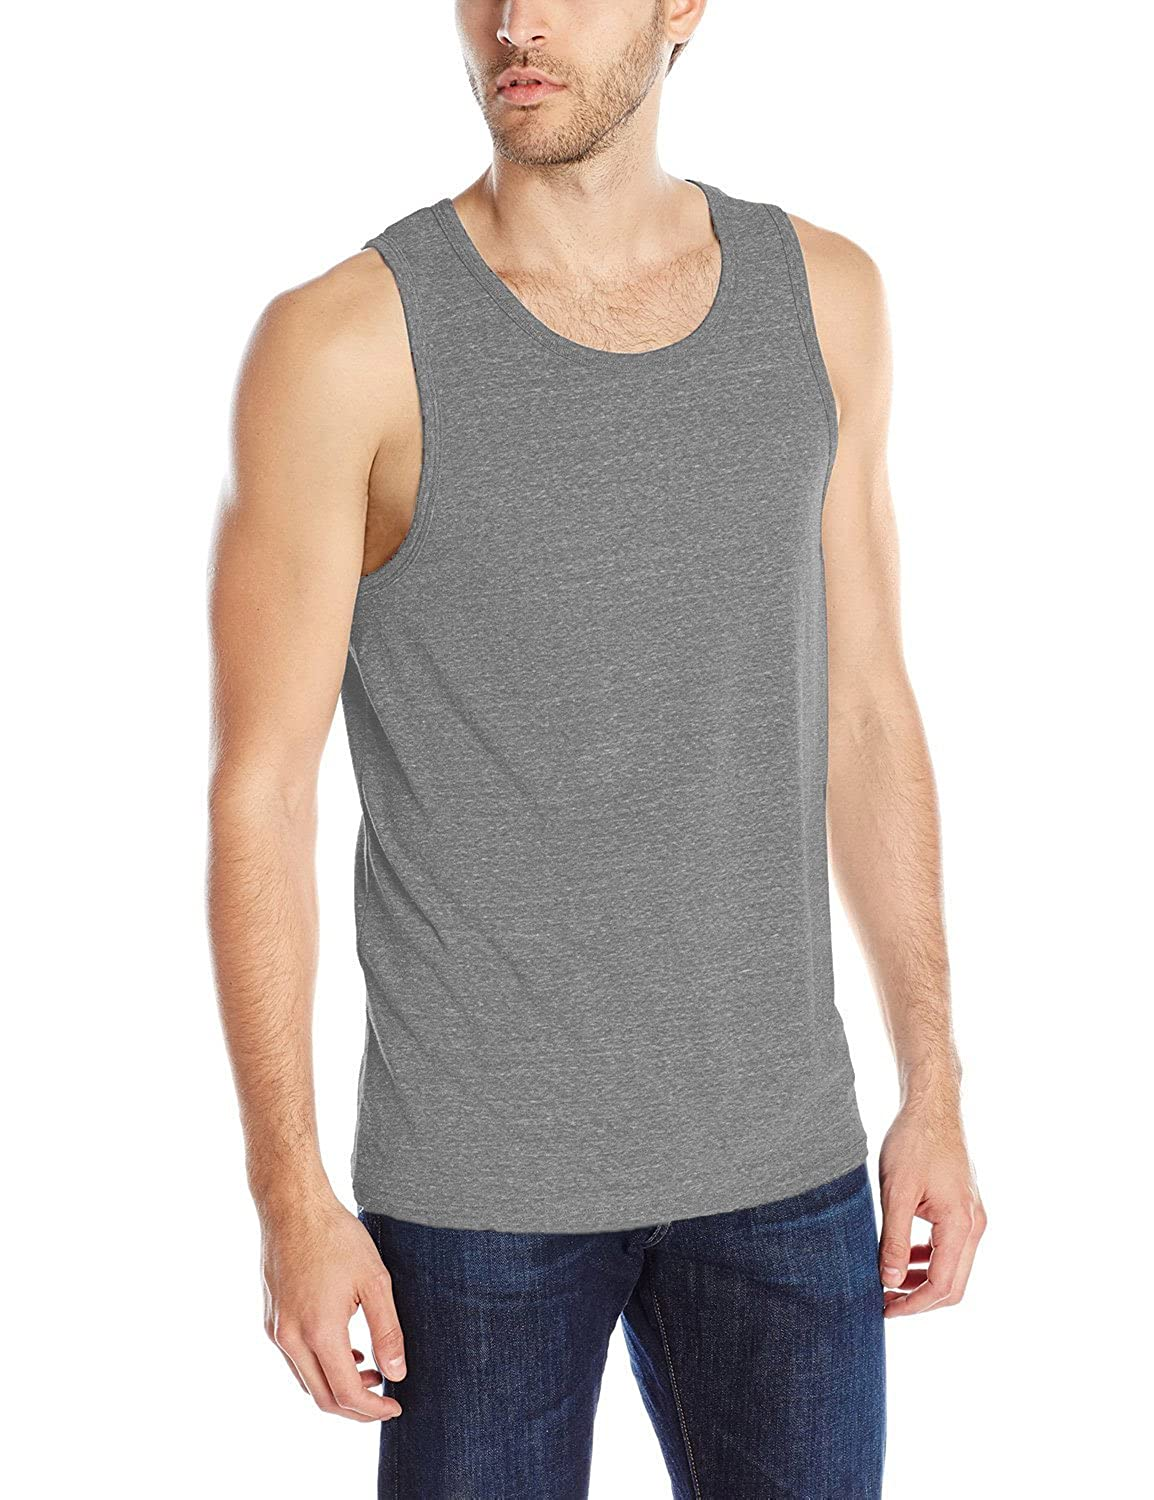 1a2e65cdc6ef6d Men s Tri-Blend Tank Top Active Soft Muscle Fit Shirts at Amazon Men s  Clothing store